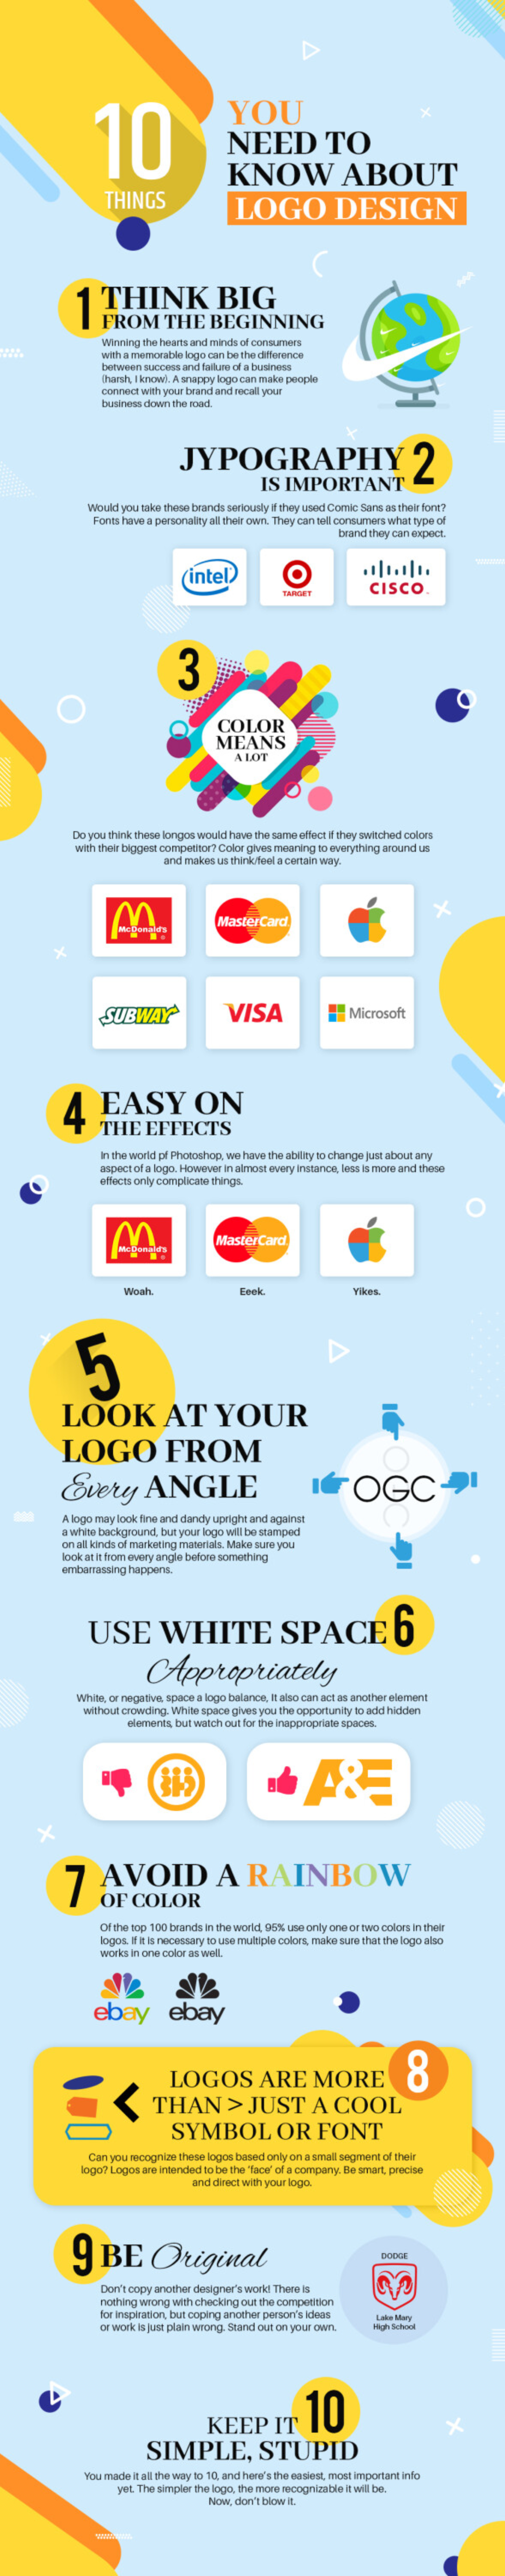 Make your logo appealing to your target audience infographic